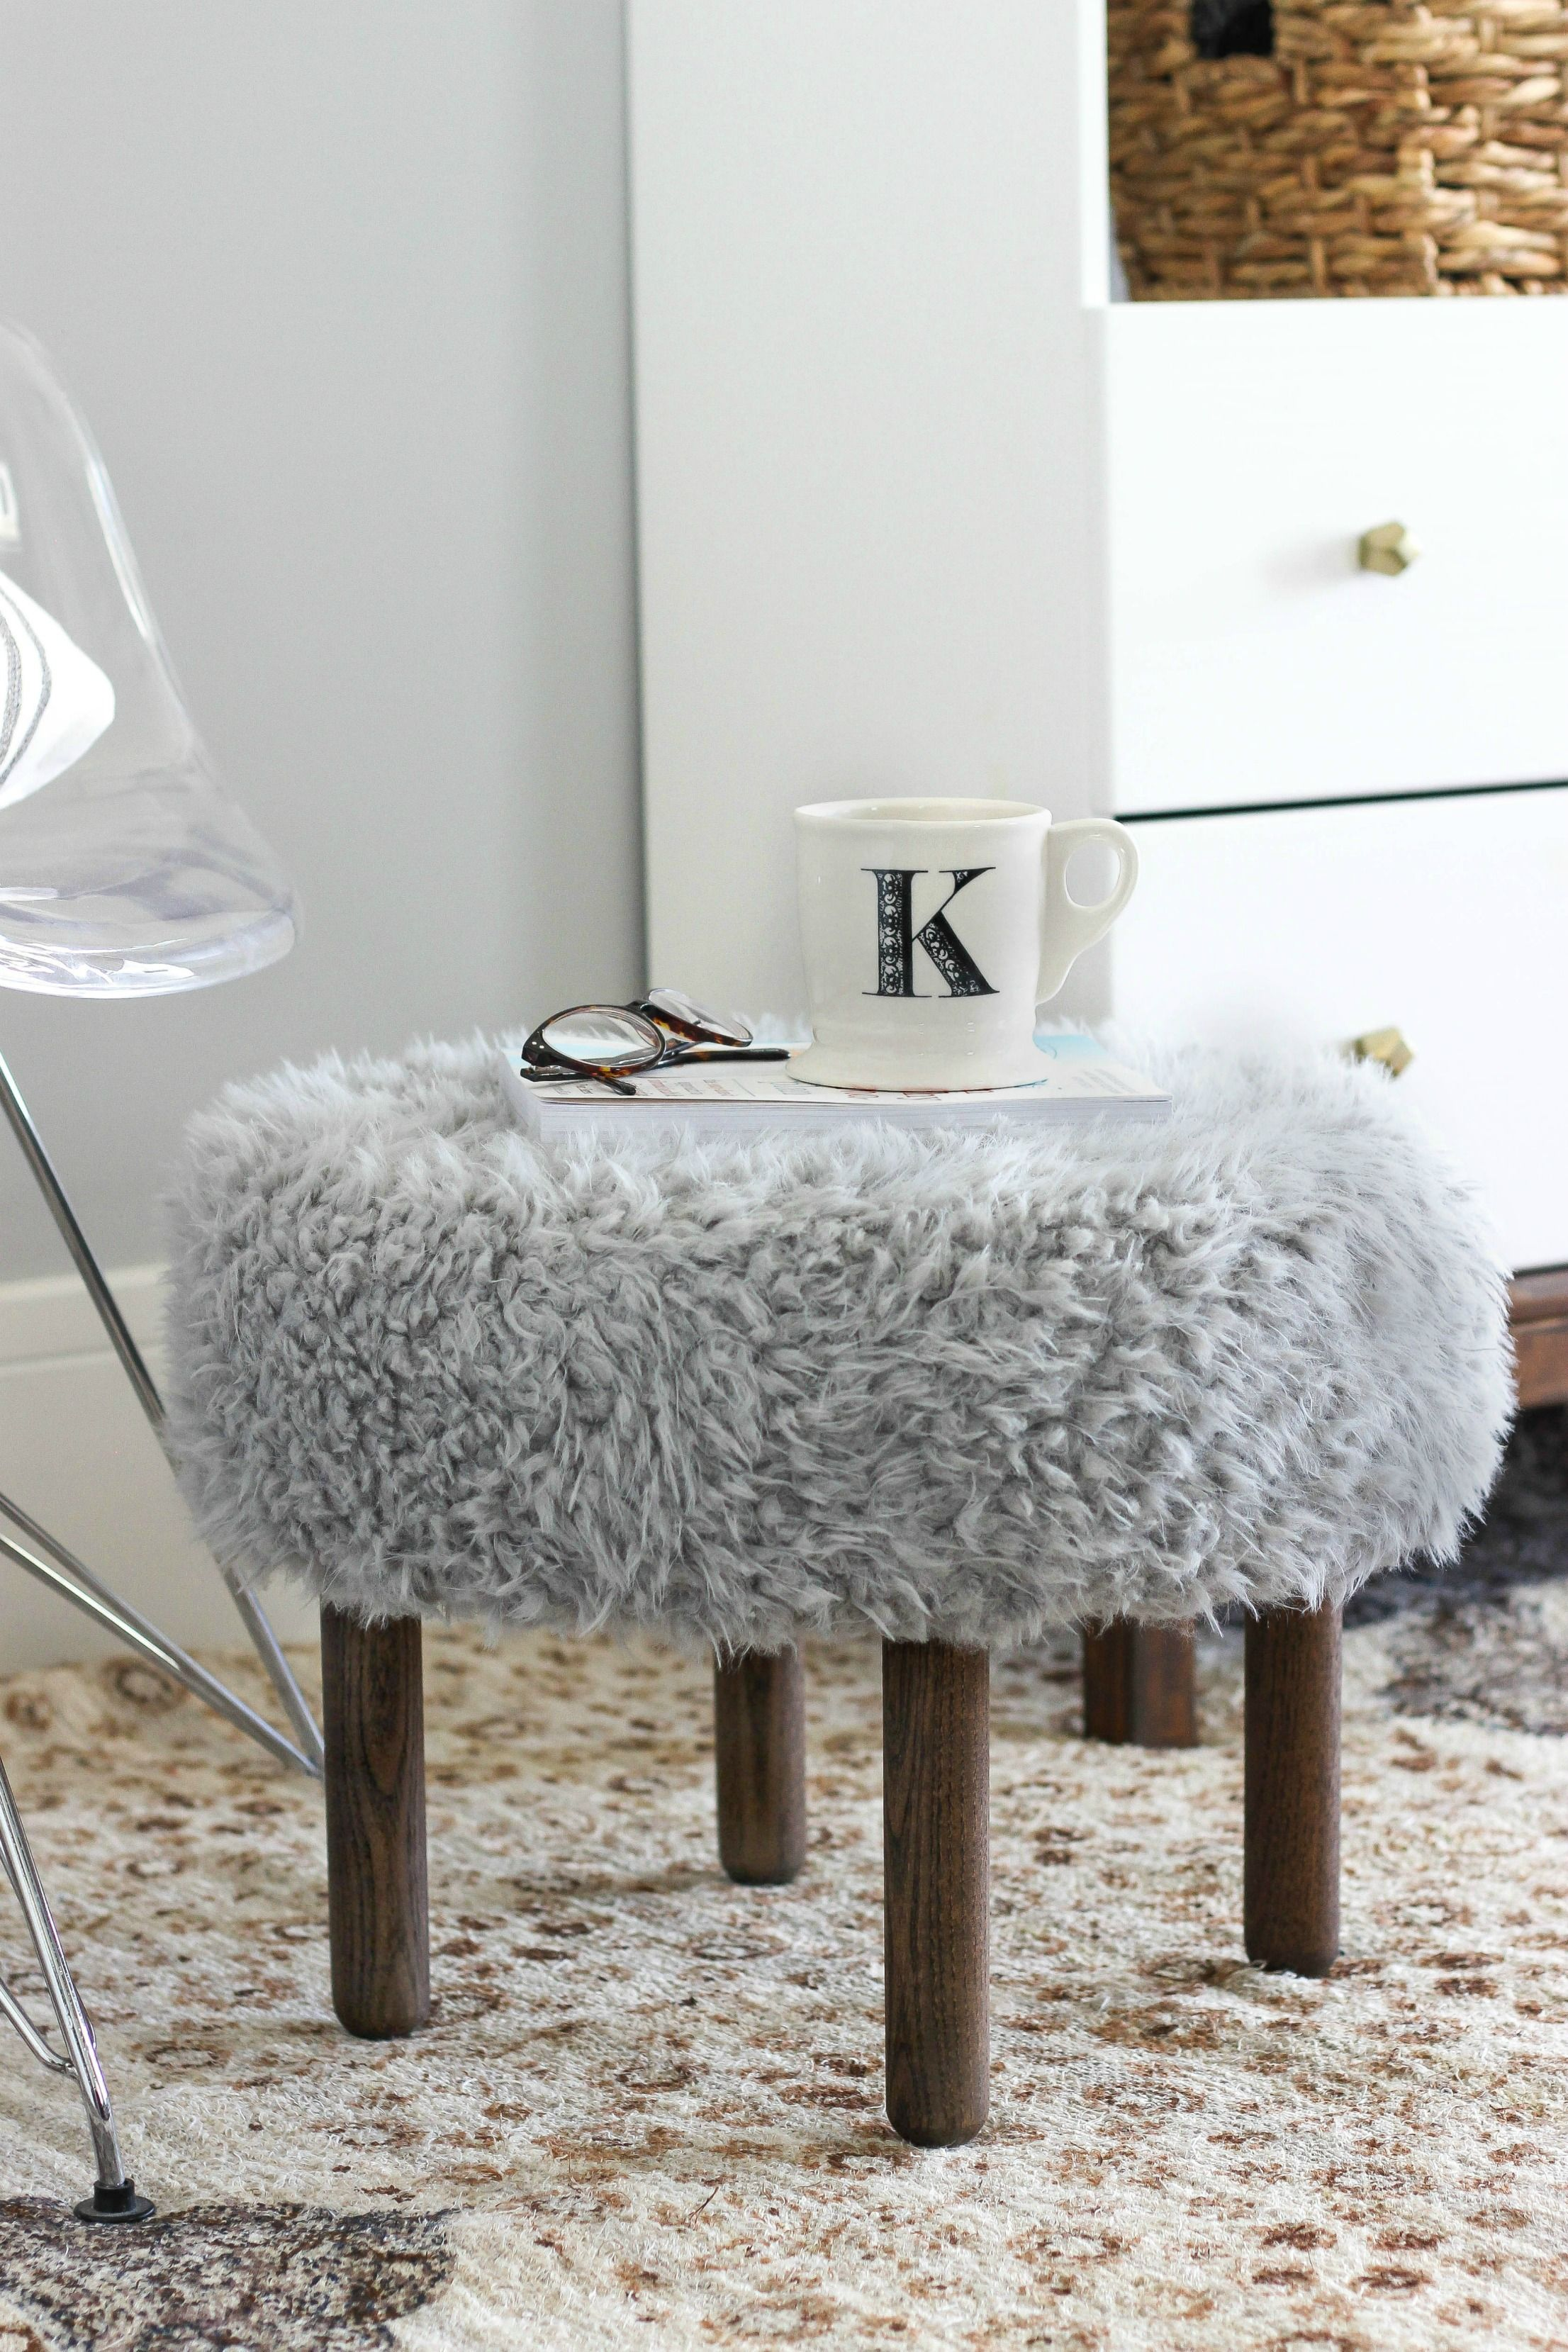 Make Your Own Faux Fur Footstool 家具